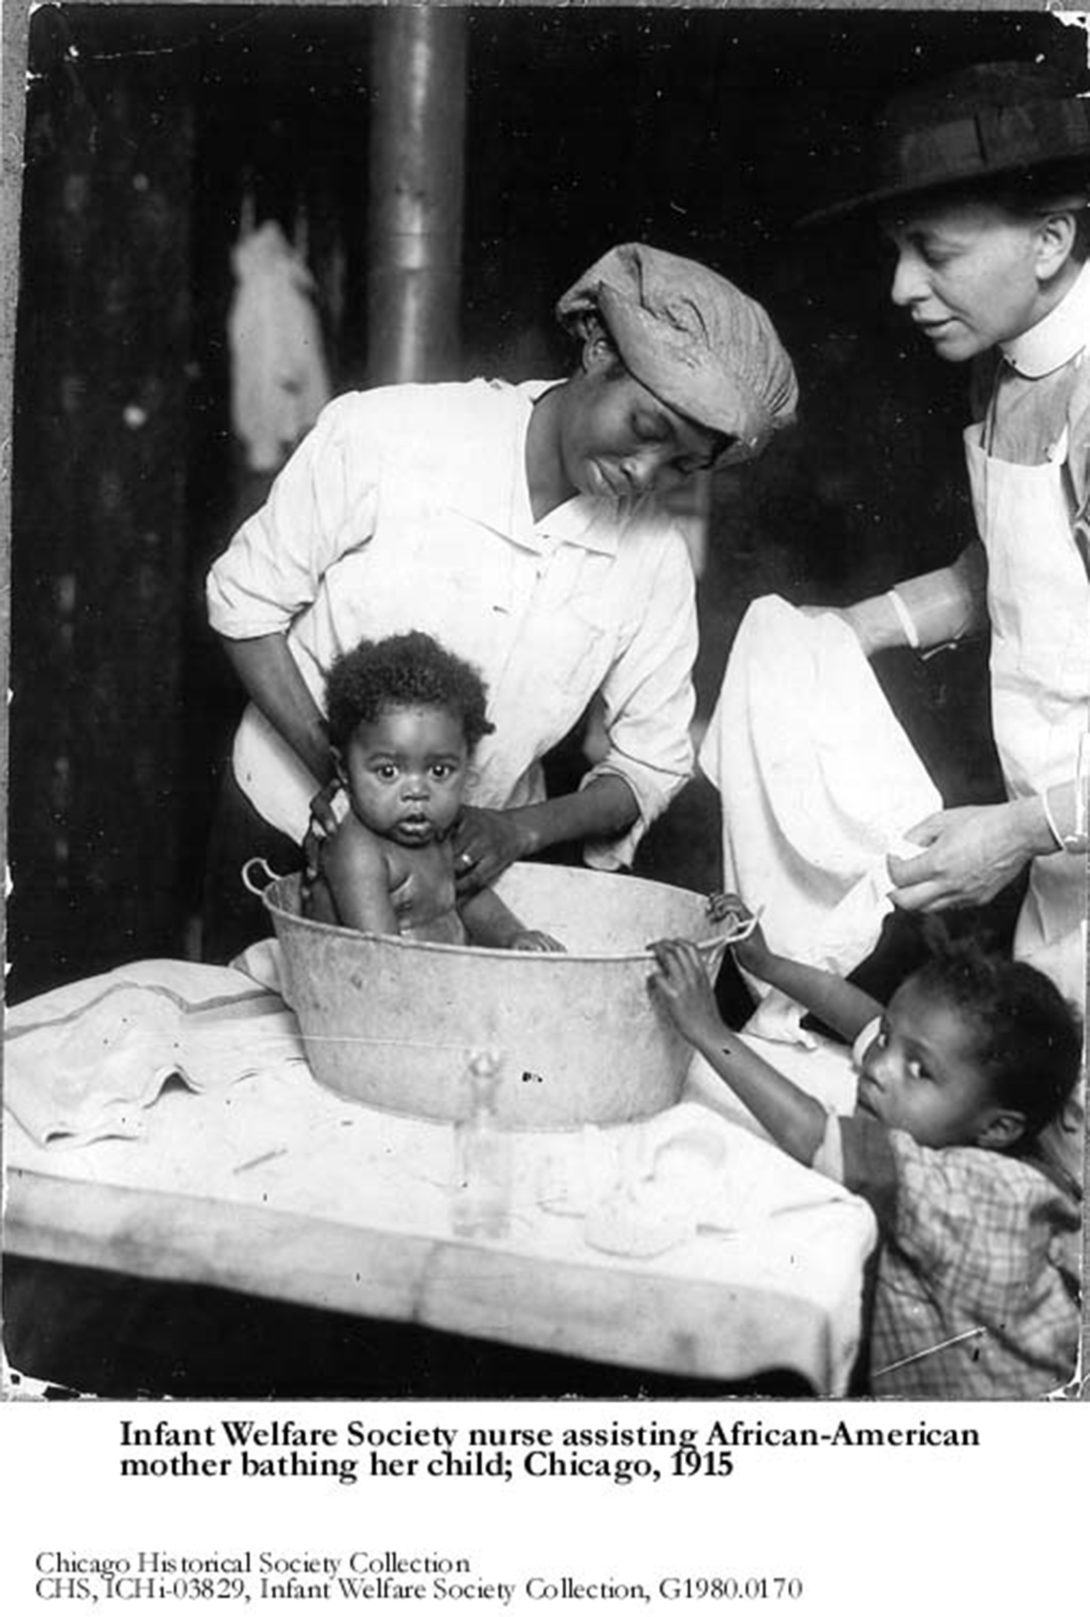 historical photo of a white nurse assisting an African-American woman bathing her baby